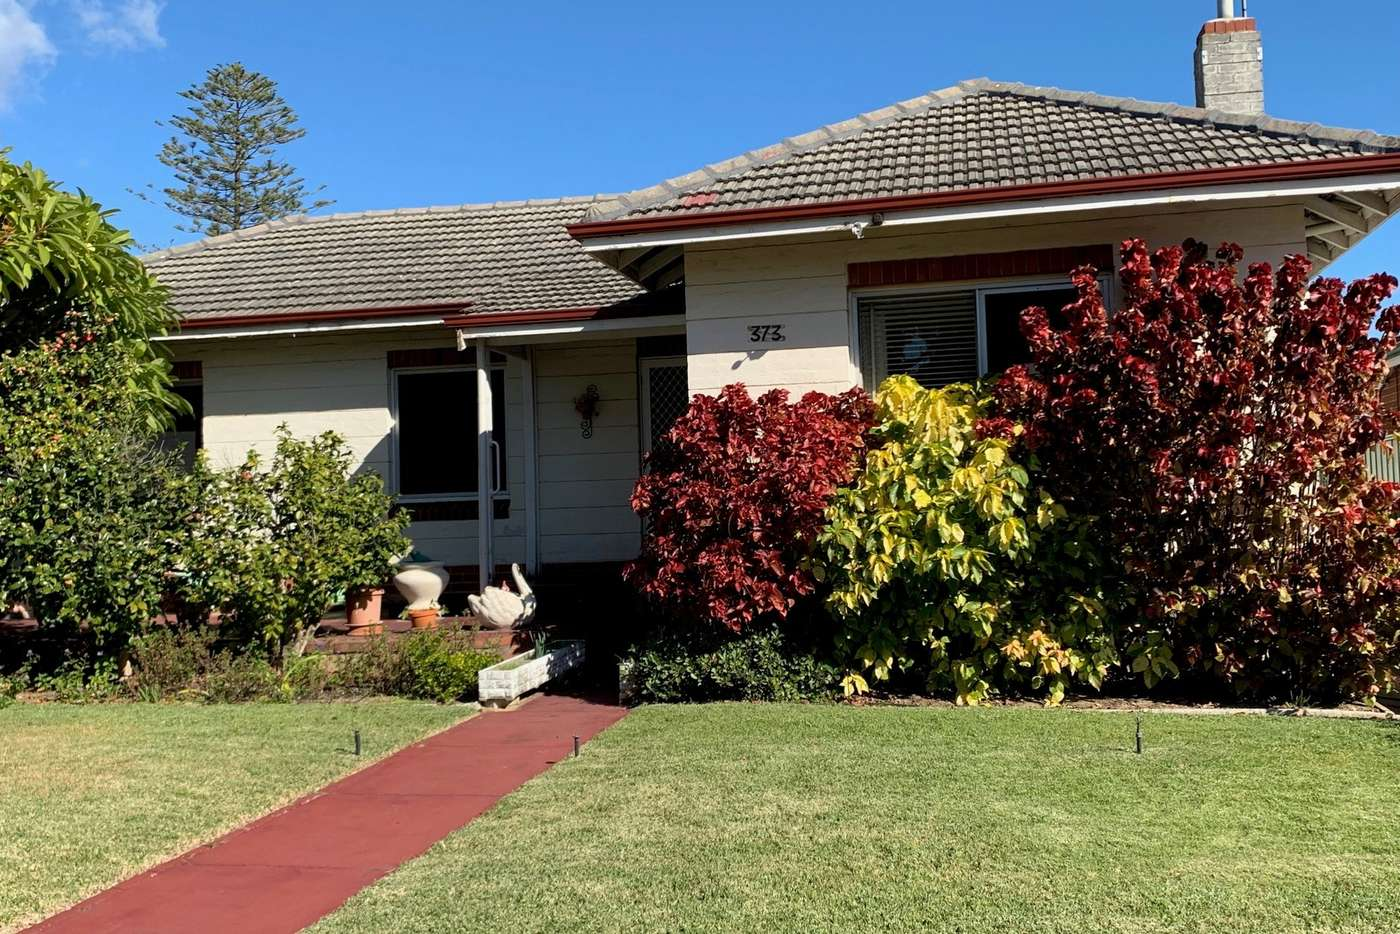 Main view of Homely house listing, 373 Berwick Street, East Victoria Park WA 6101